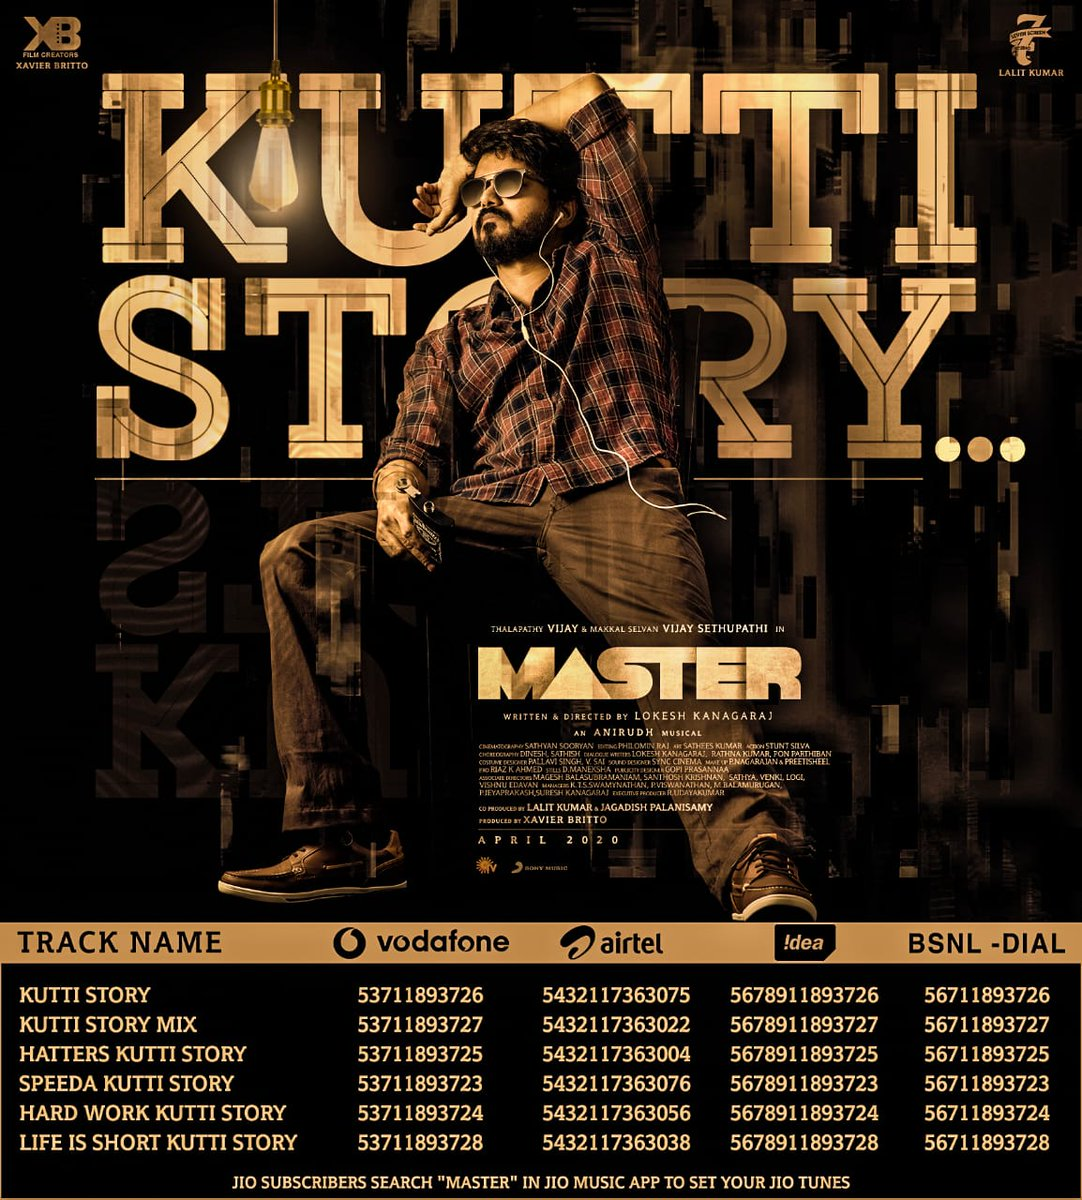 Give your callers a slice of #Thalapathy's #KuttiStory! Set your ring-back tunes now! ❤️🎼  ➡️   @actorvijay @anirudhofficial @Dir_Lokesh @Jagadishbliss @Lalit_SevenScr @Arunrajakamaraj @XBFilmCreators @7screenstudio   #Master #MasterSingle